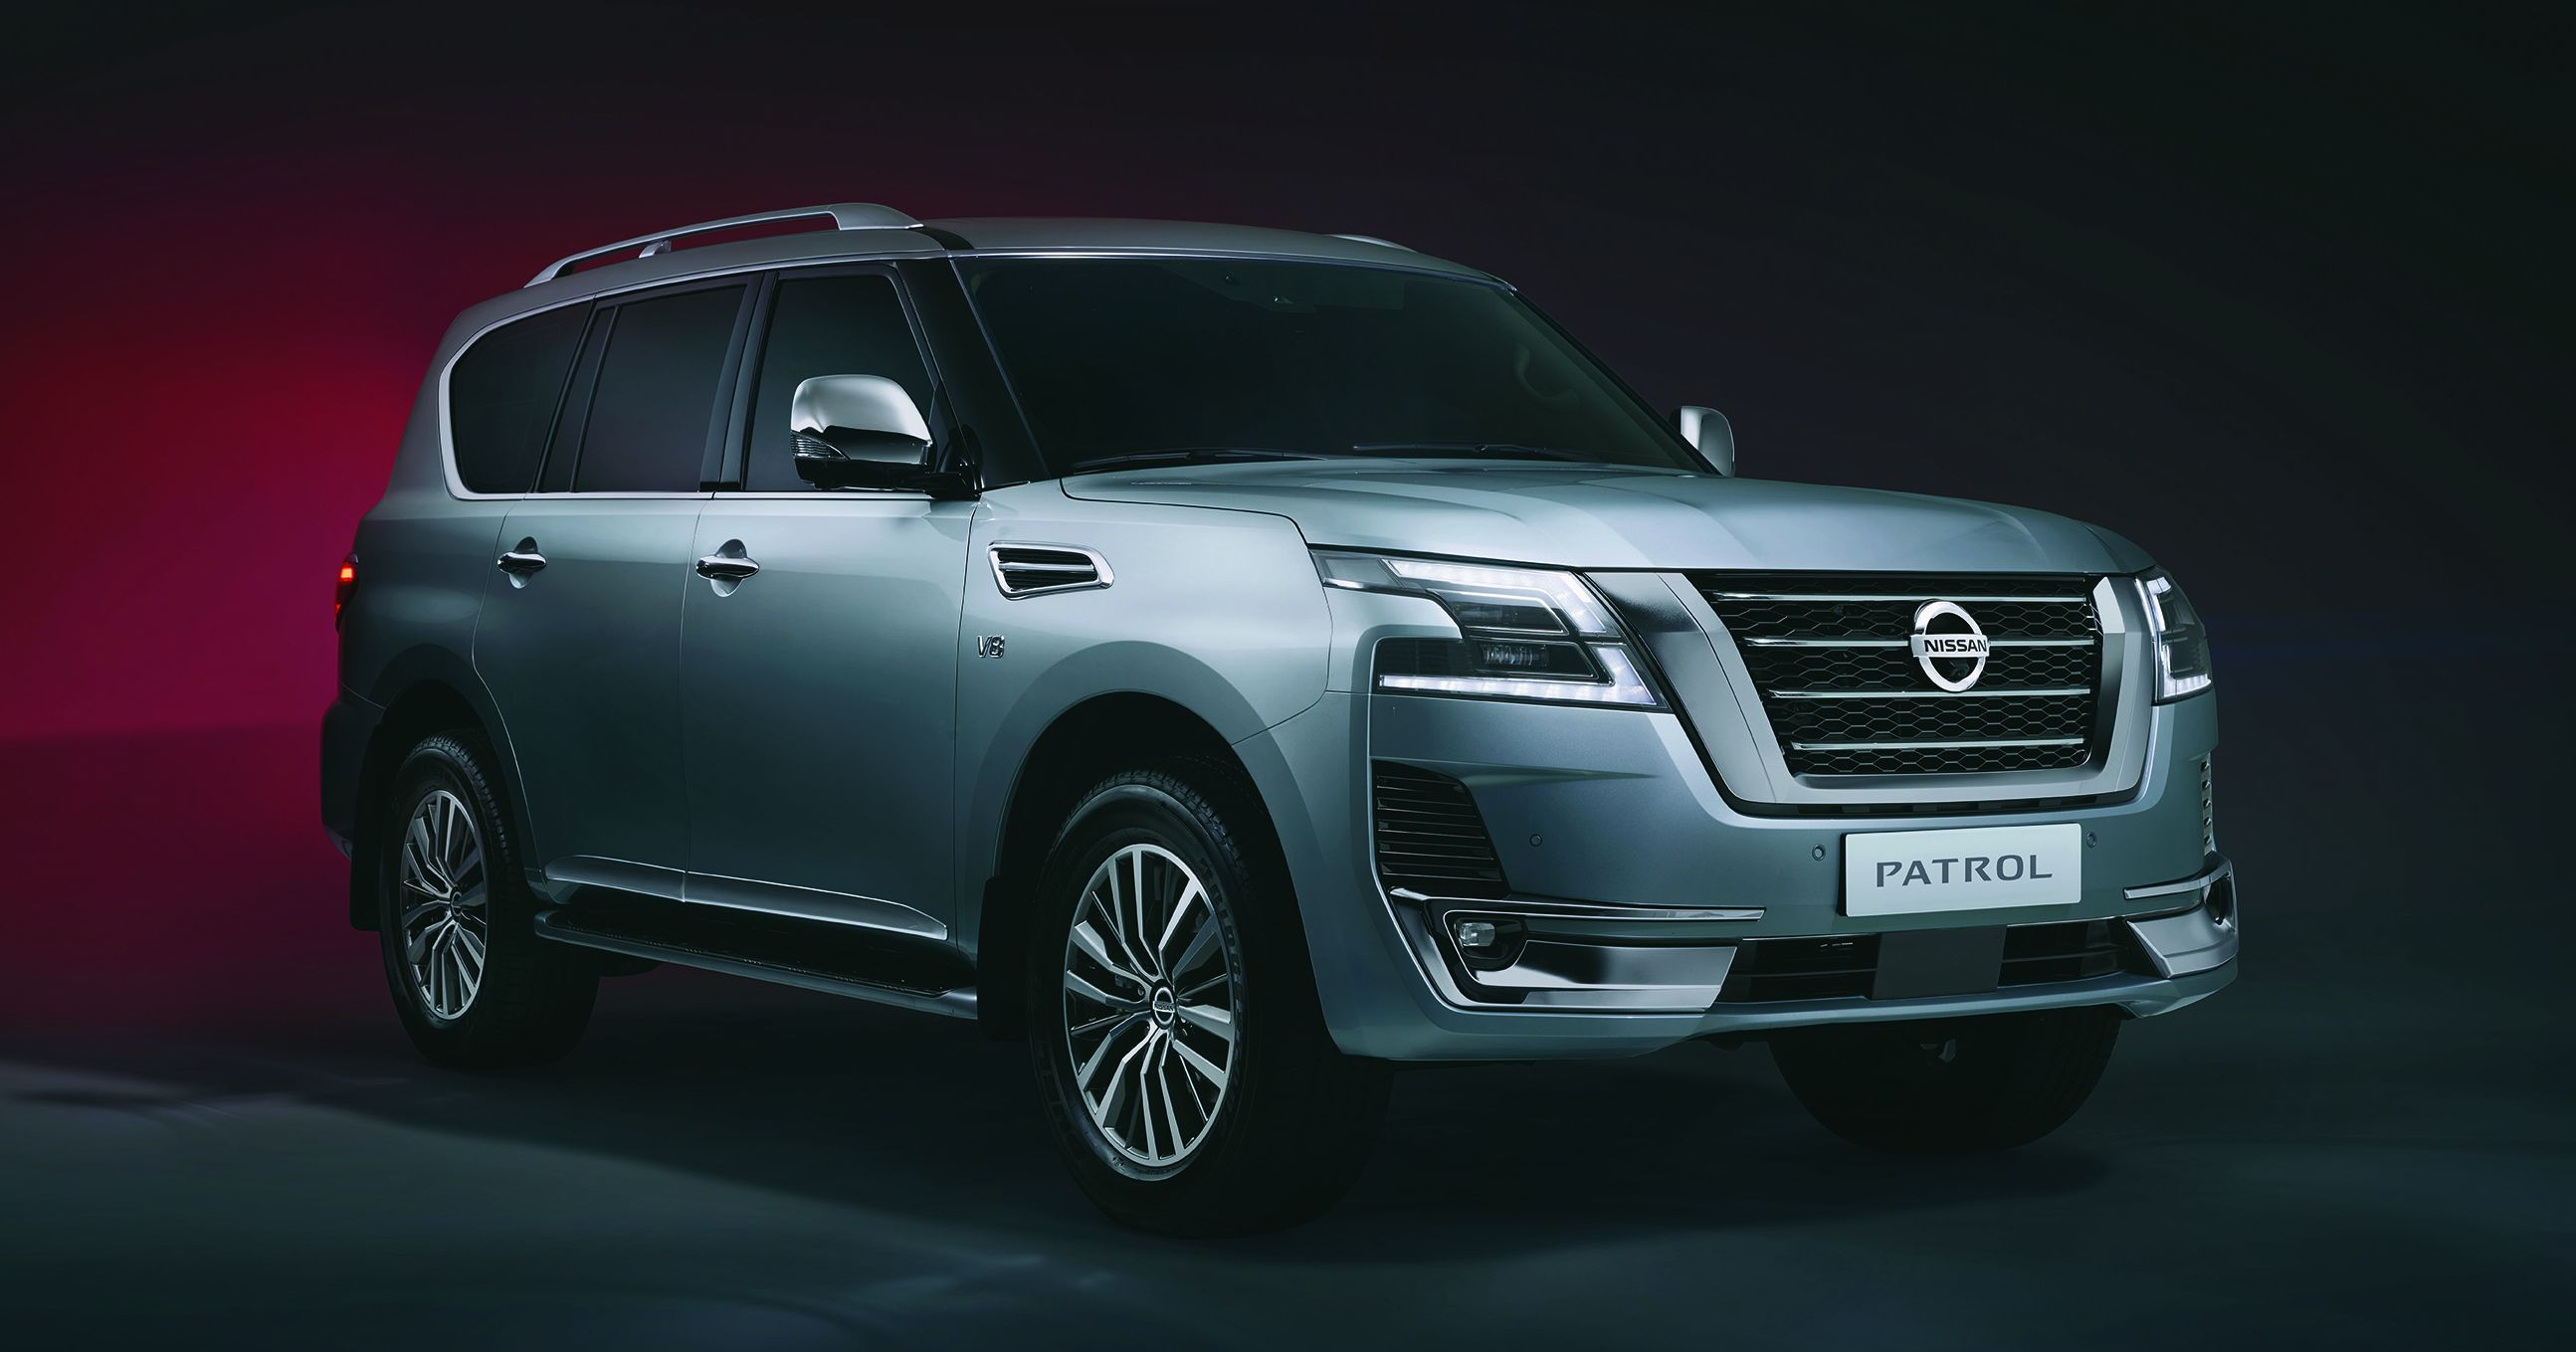 2020 Nissan Patrol Facelift 4 0l V6 And 5 6l V8 Carplay Android Aeb Hydraulic Body Motion Control Paultan Org